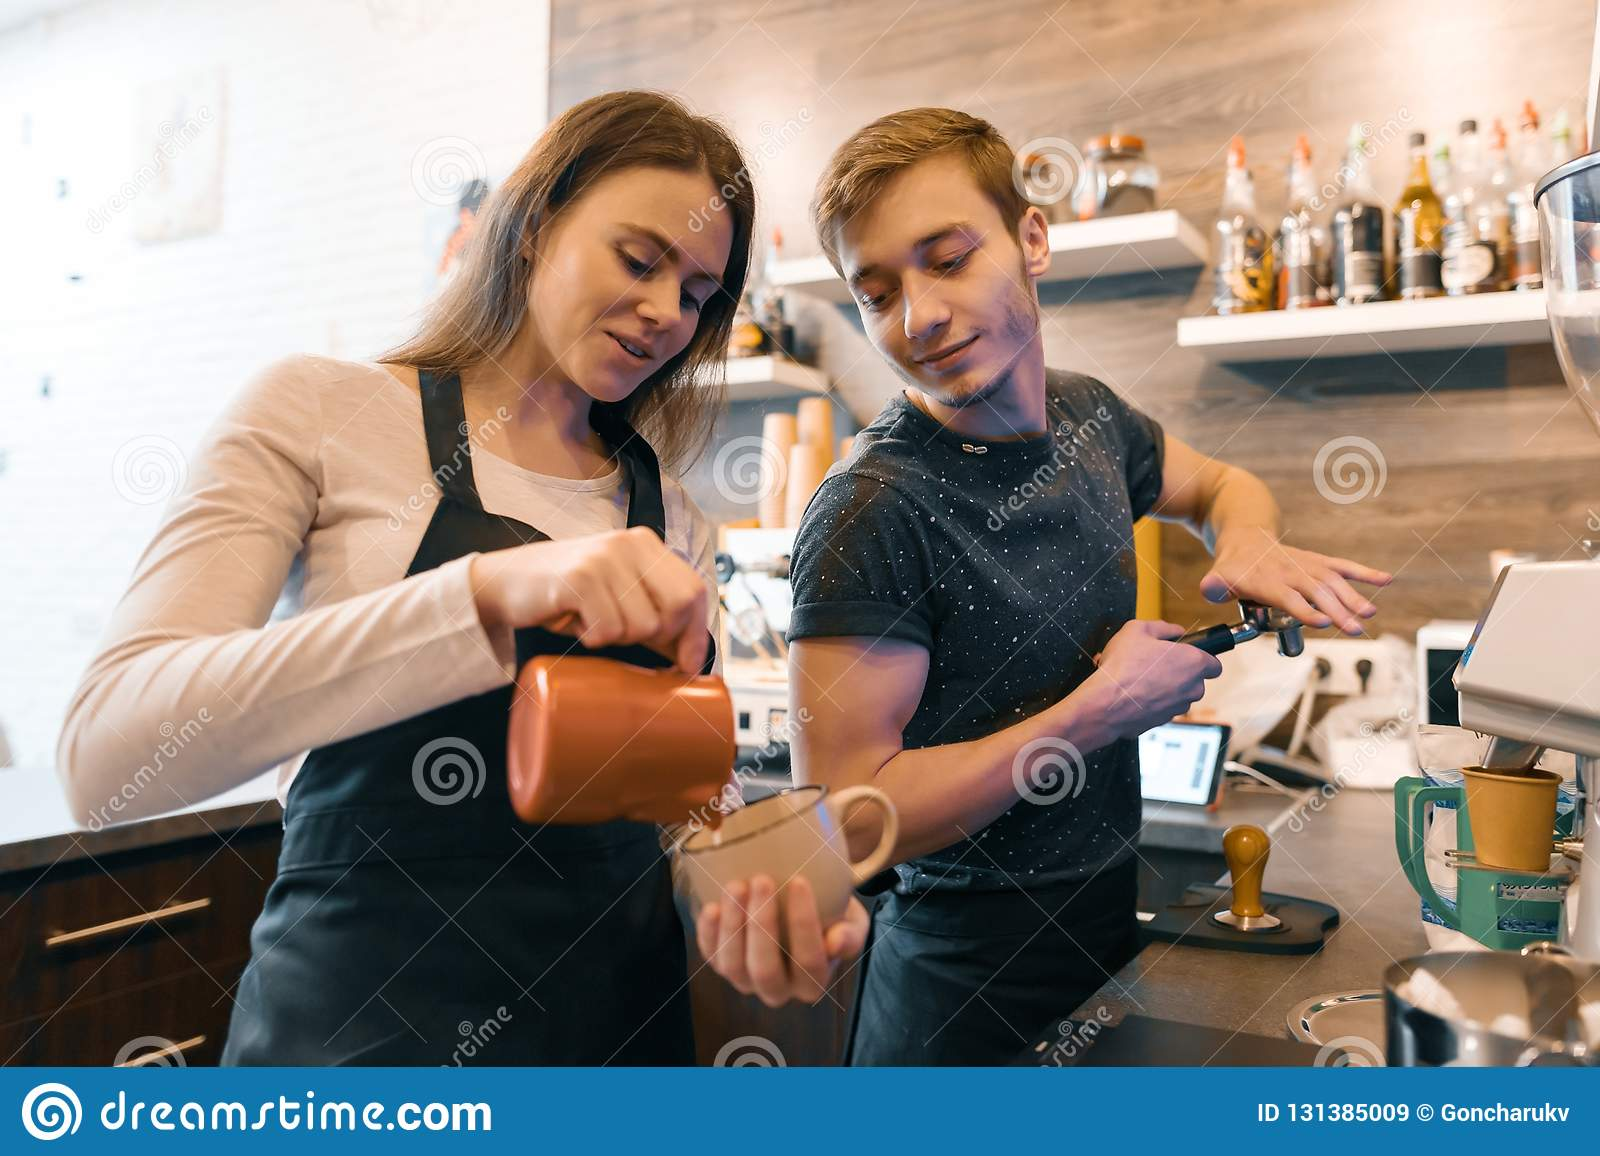 Young couple man and woman owners small business coffee shop, working near coffee machines, making drinks